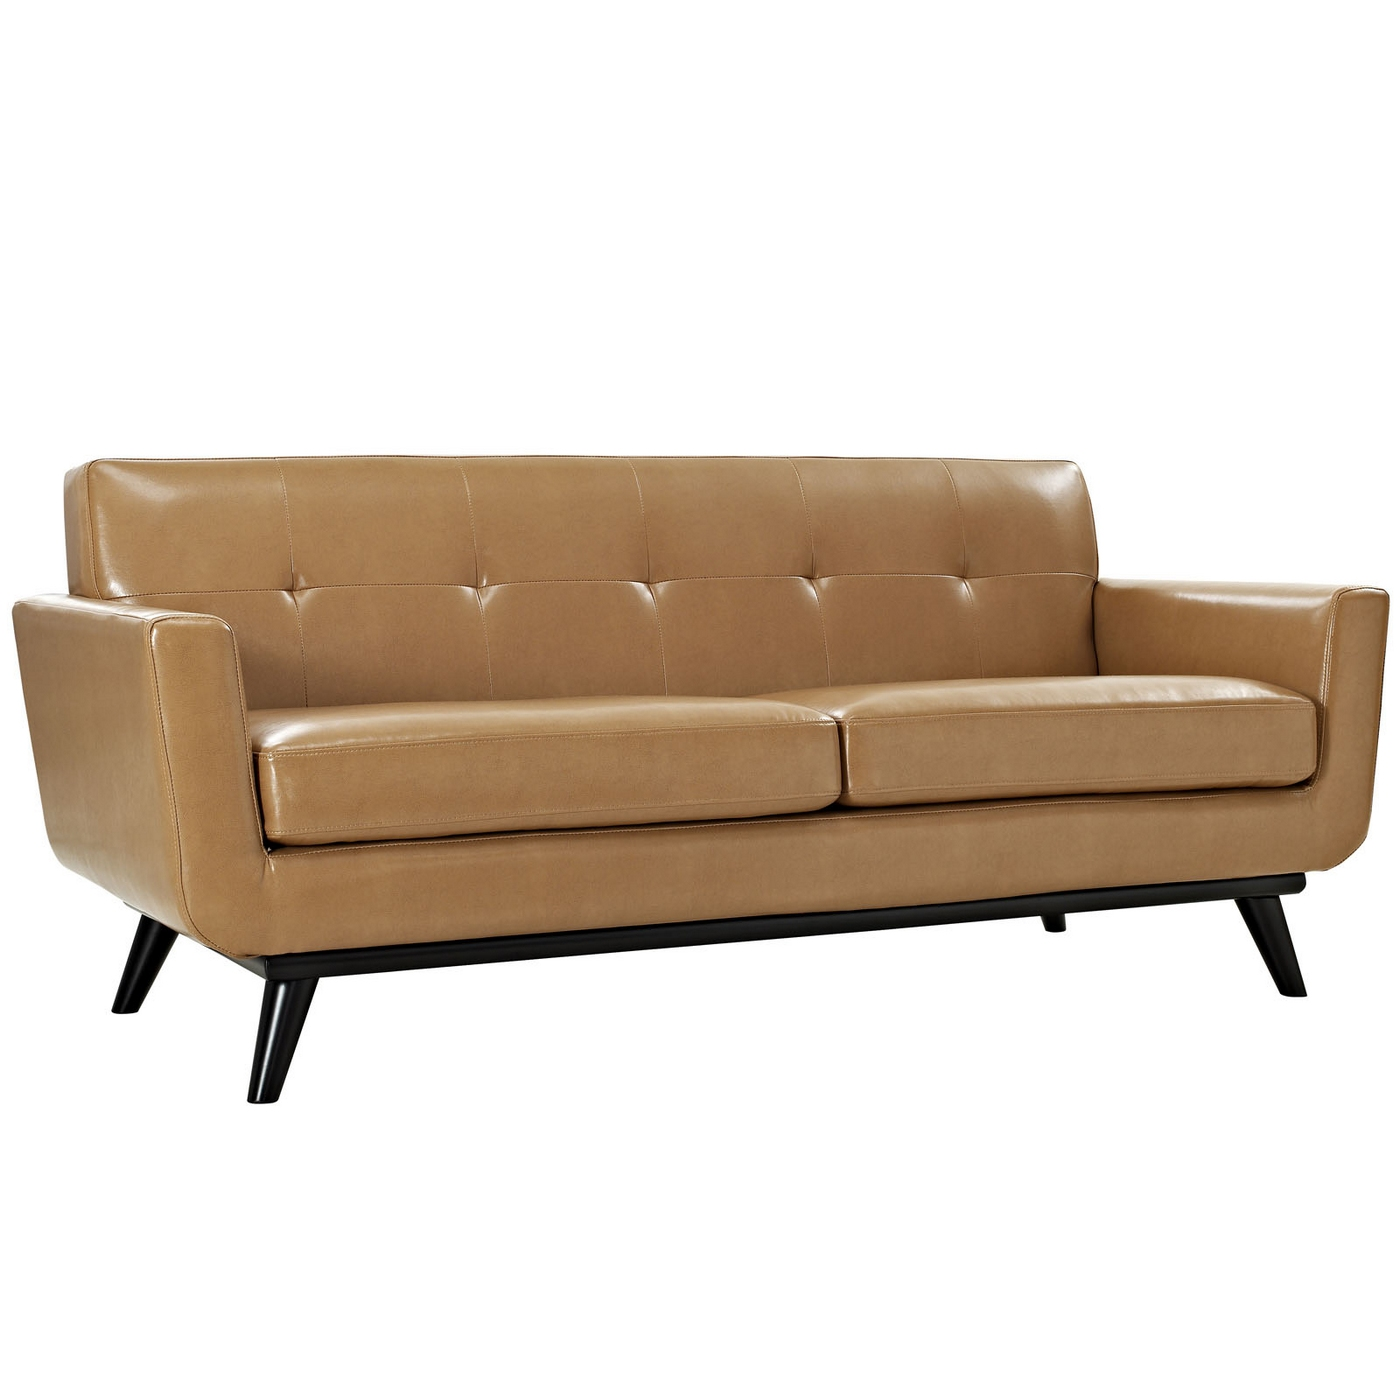 Engage Modern Bonded Leather Loveseat With Button Tufted Accents Tan